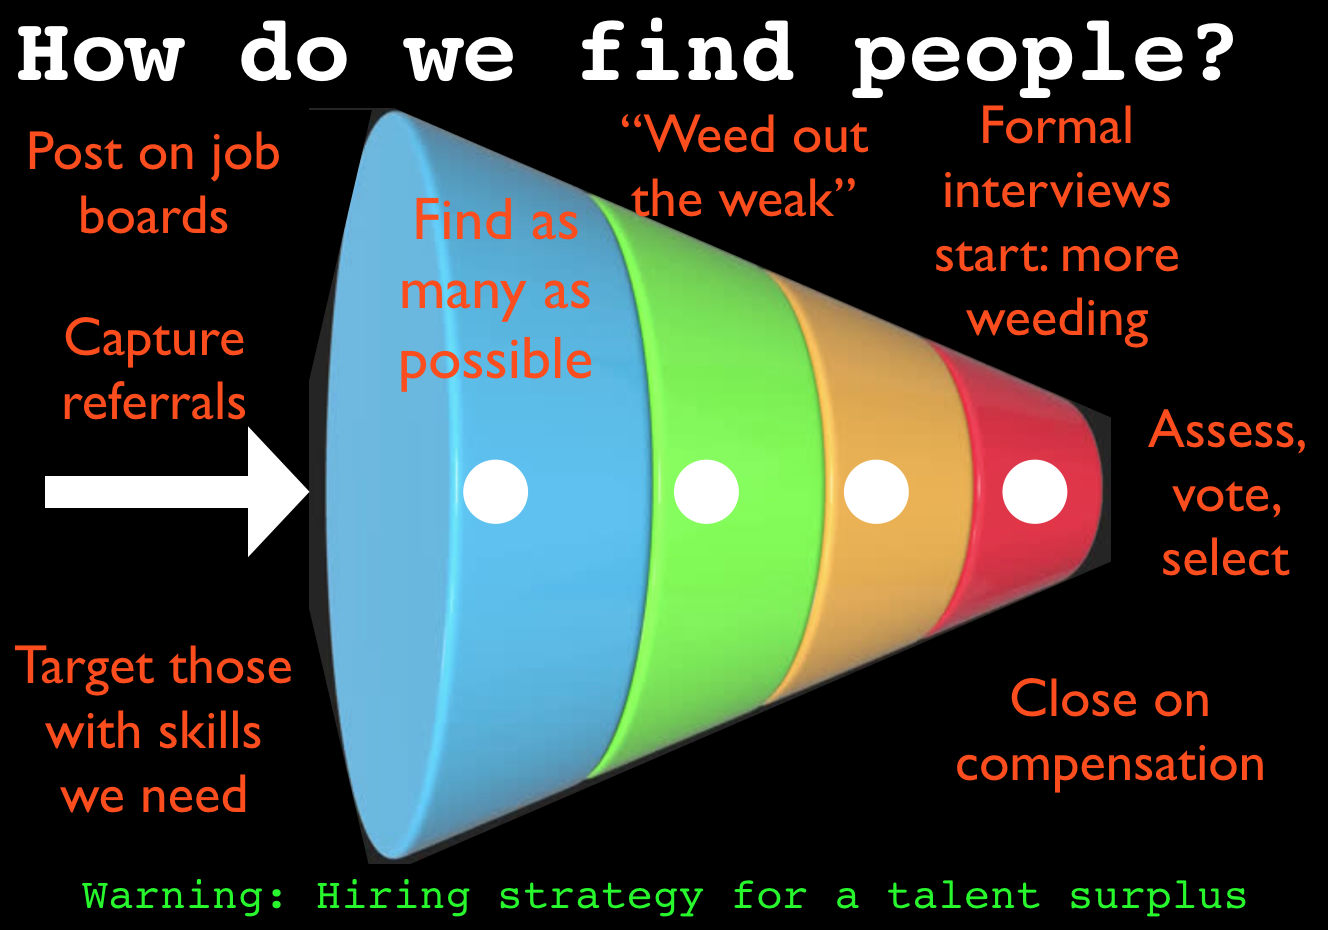 hiring strategy